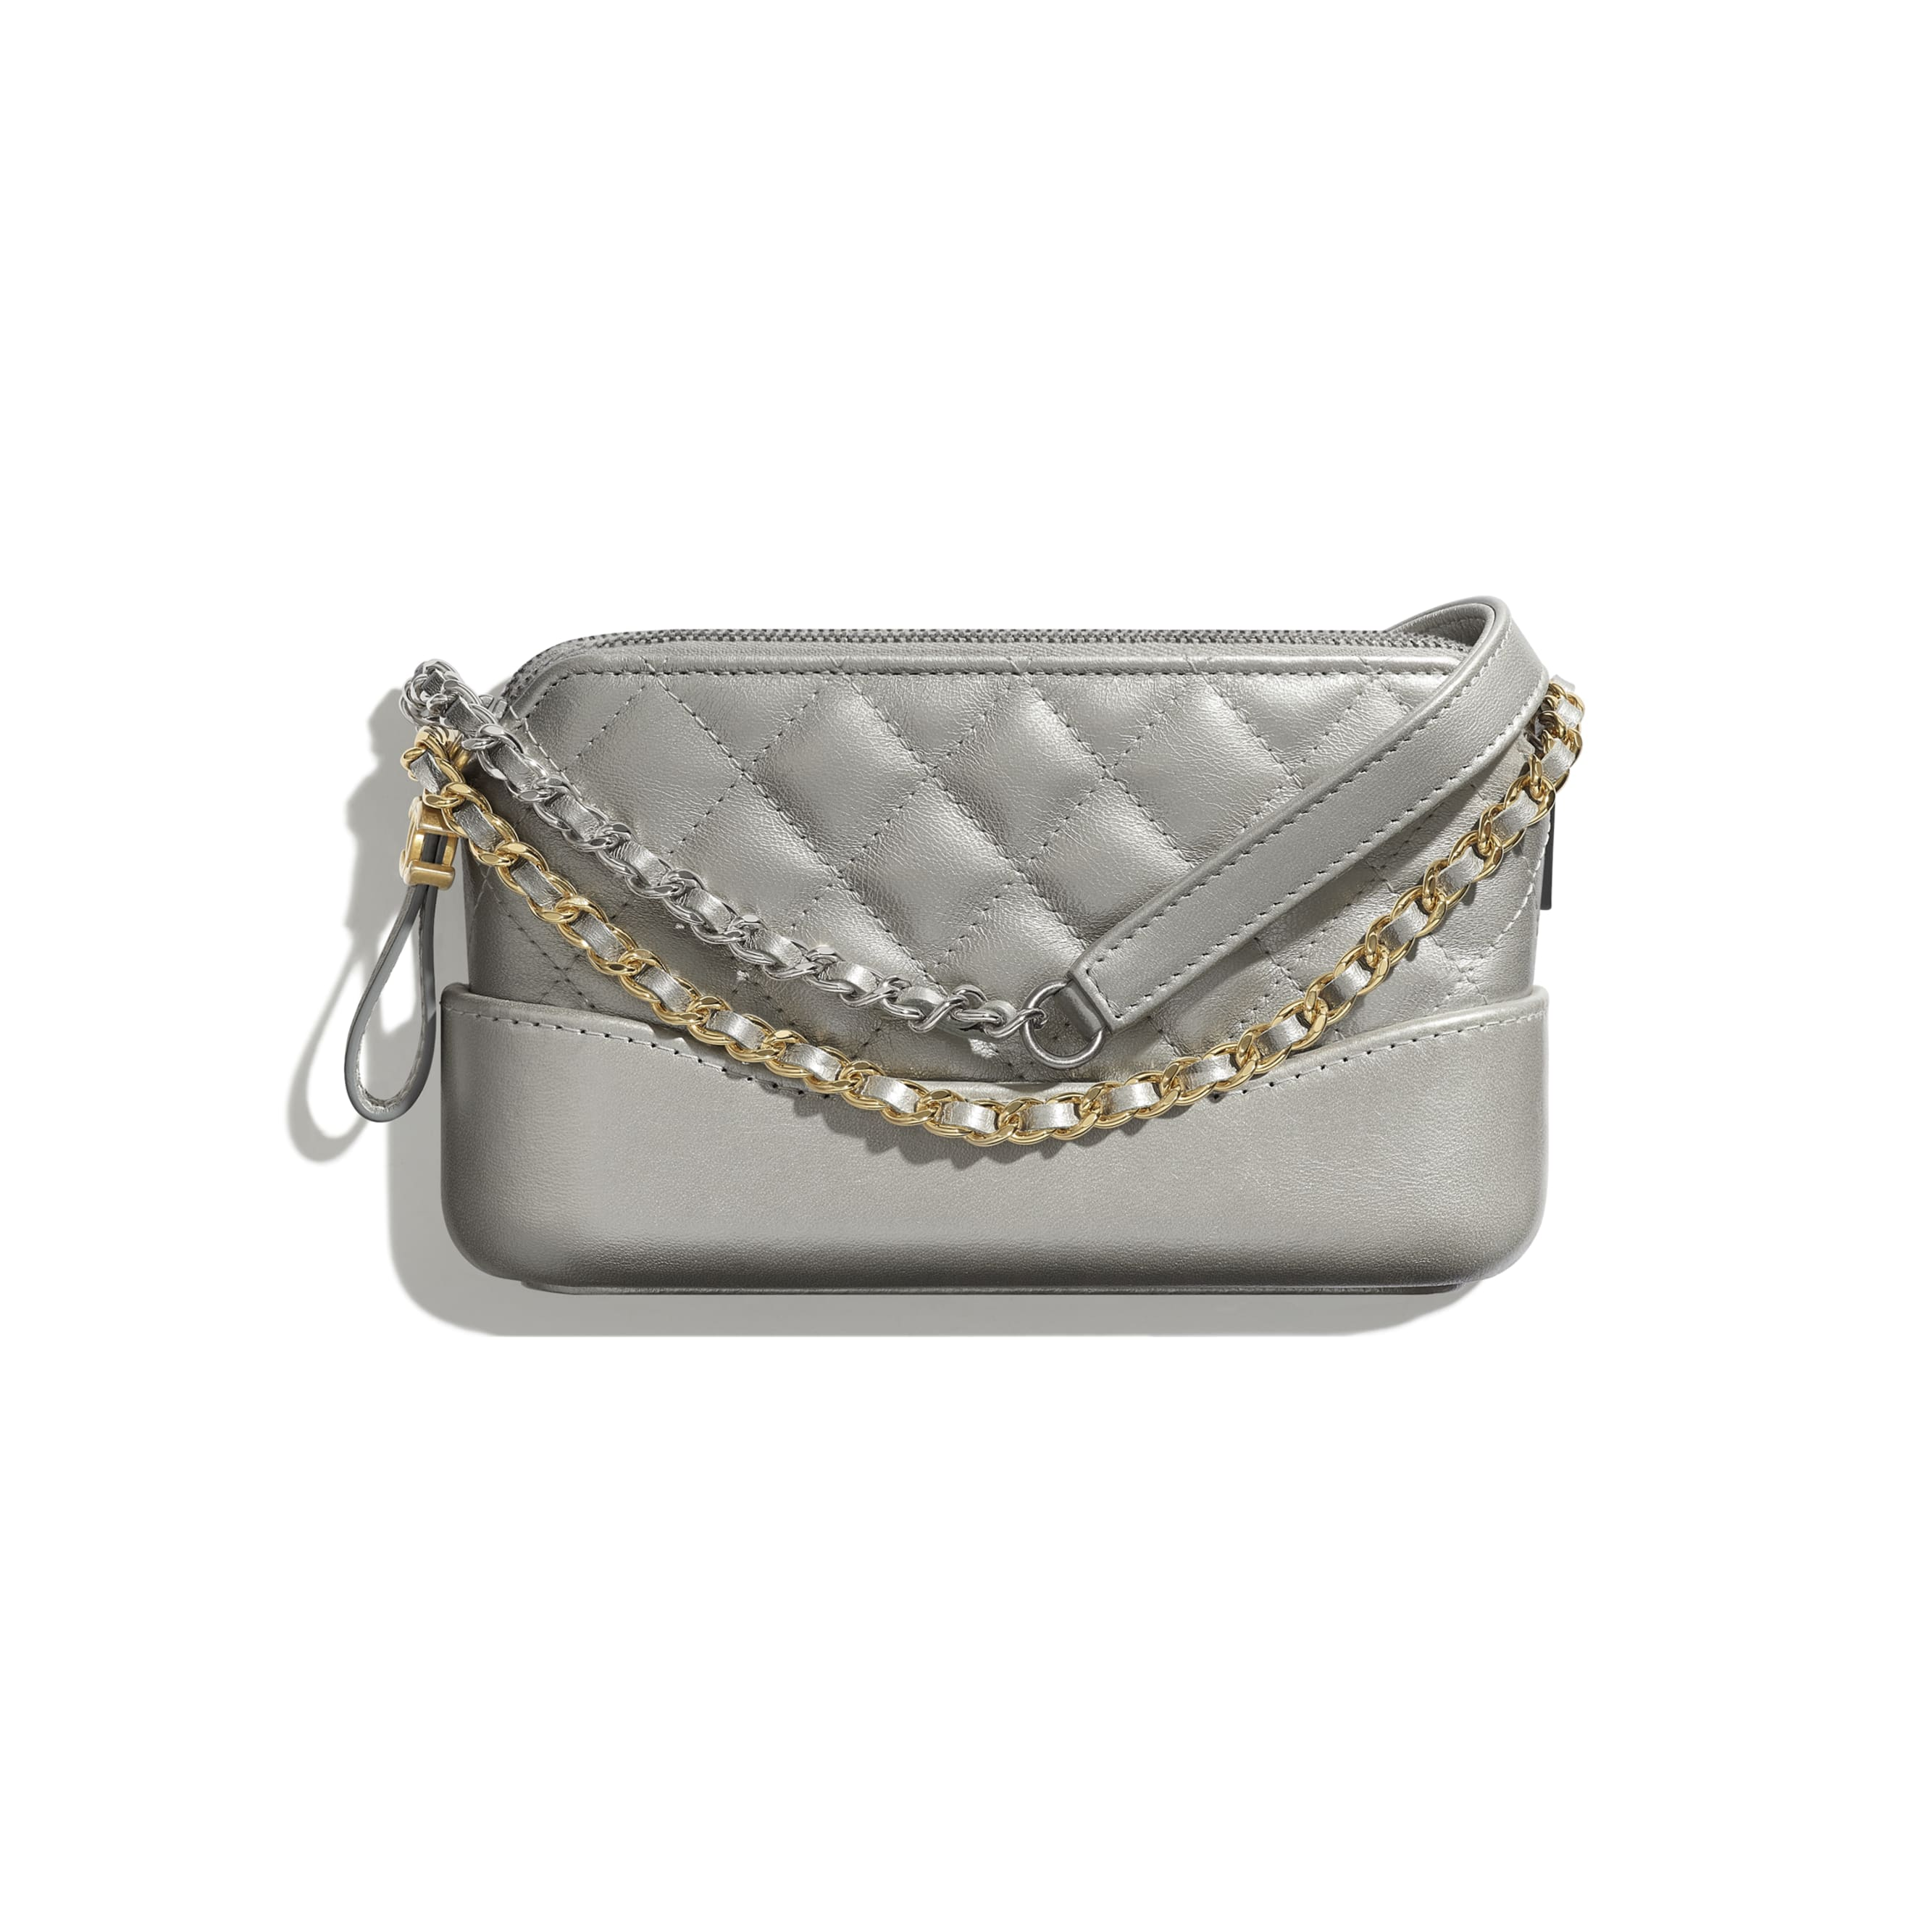 Clutch With Chain - Silver - Metallic Crumpled Lambskin, Calfskin, Gold-Tone & Silver-Tone Metal - Default view - see standard sized version